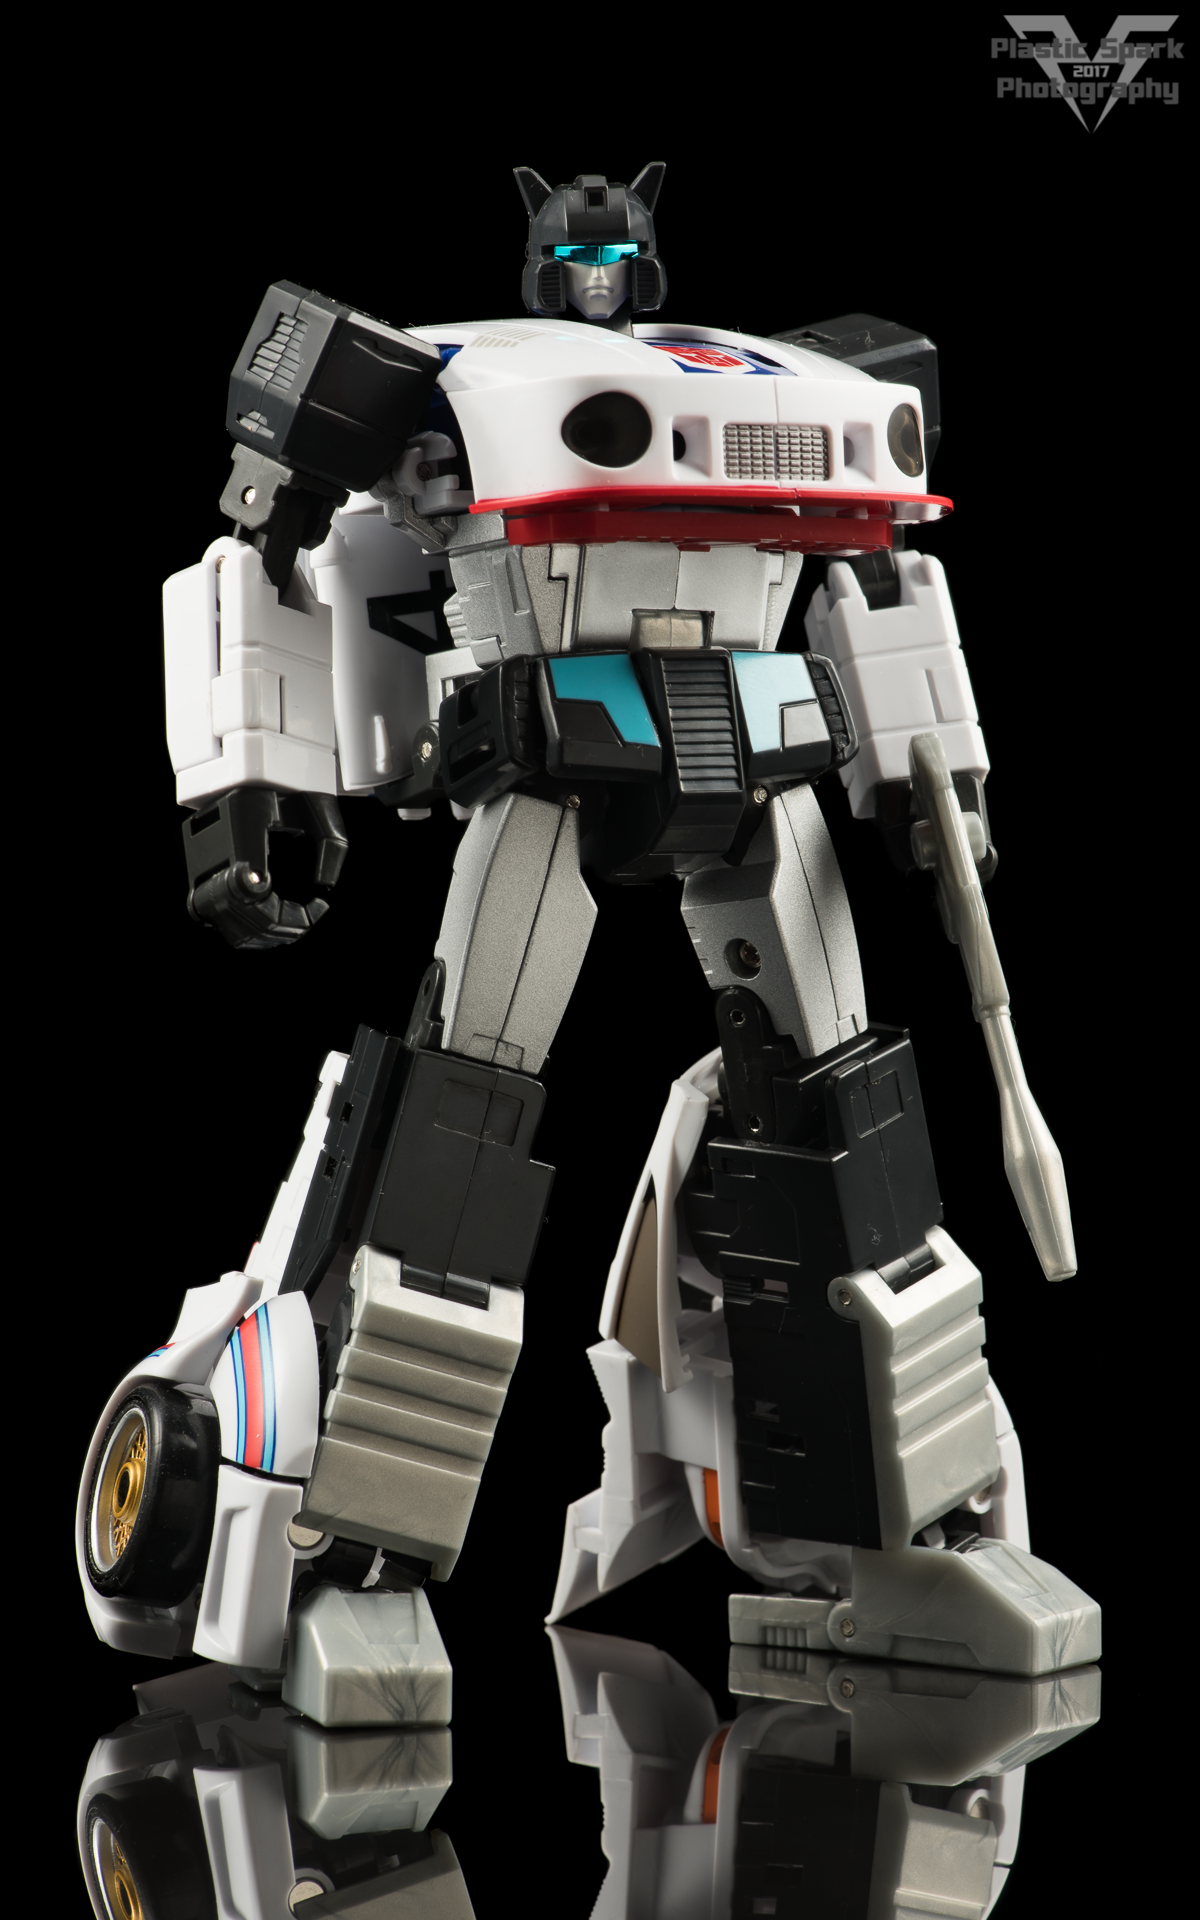 MakeToys-Re-Master-MTRM-09-Downbeat--(1-of-42).png